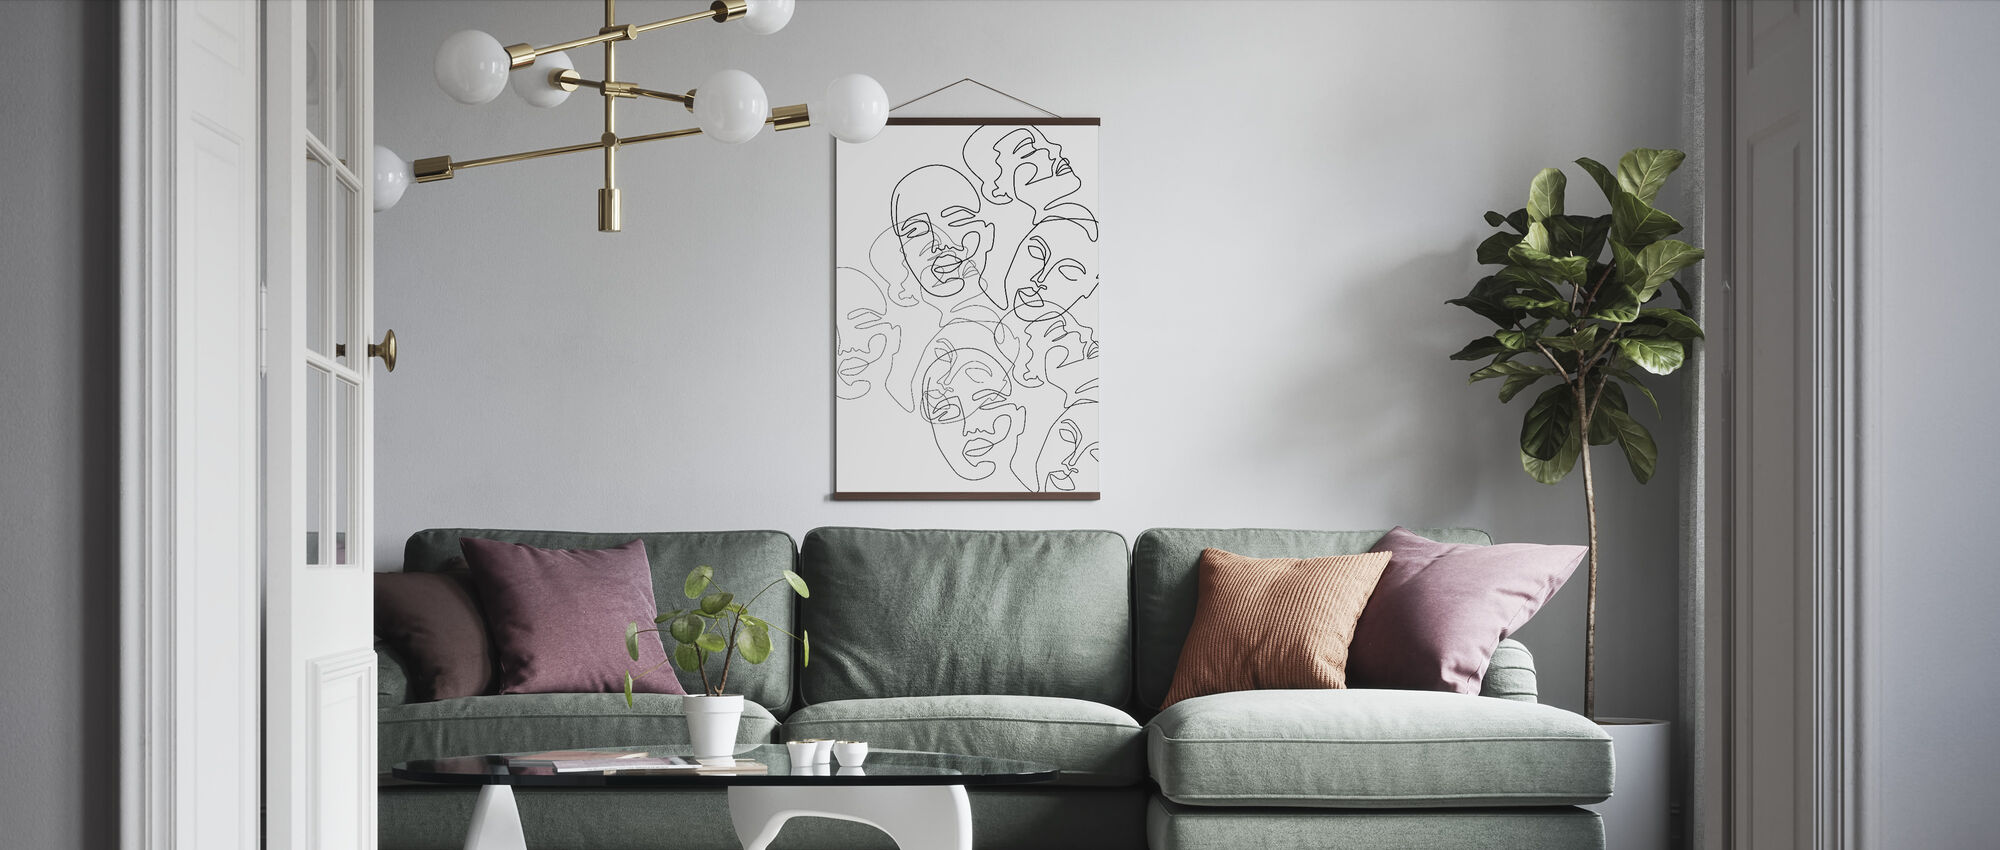 Lined Face Sketches - Poster - Living Room